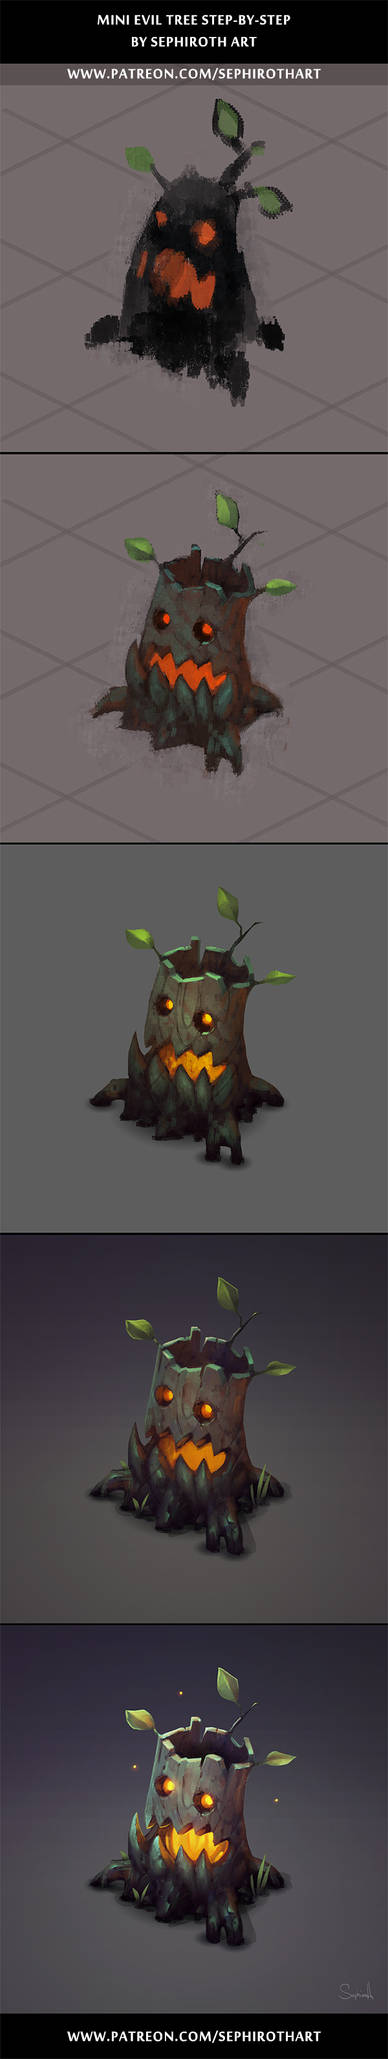 Mini Evil Tree stepbystep